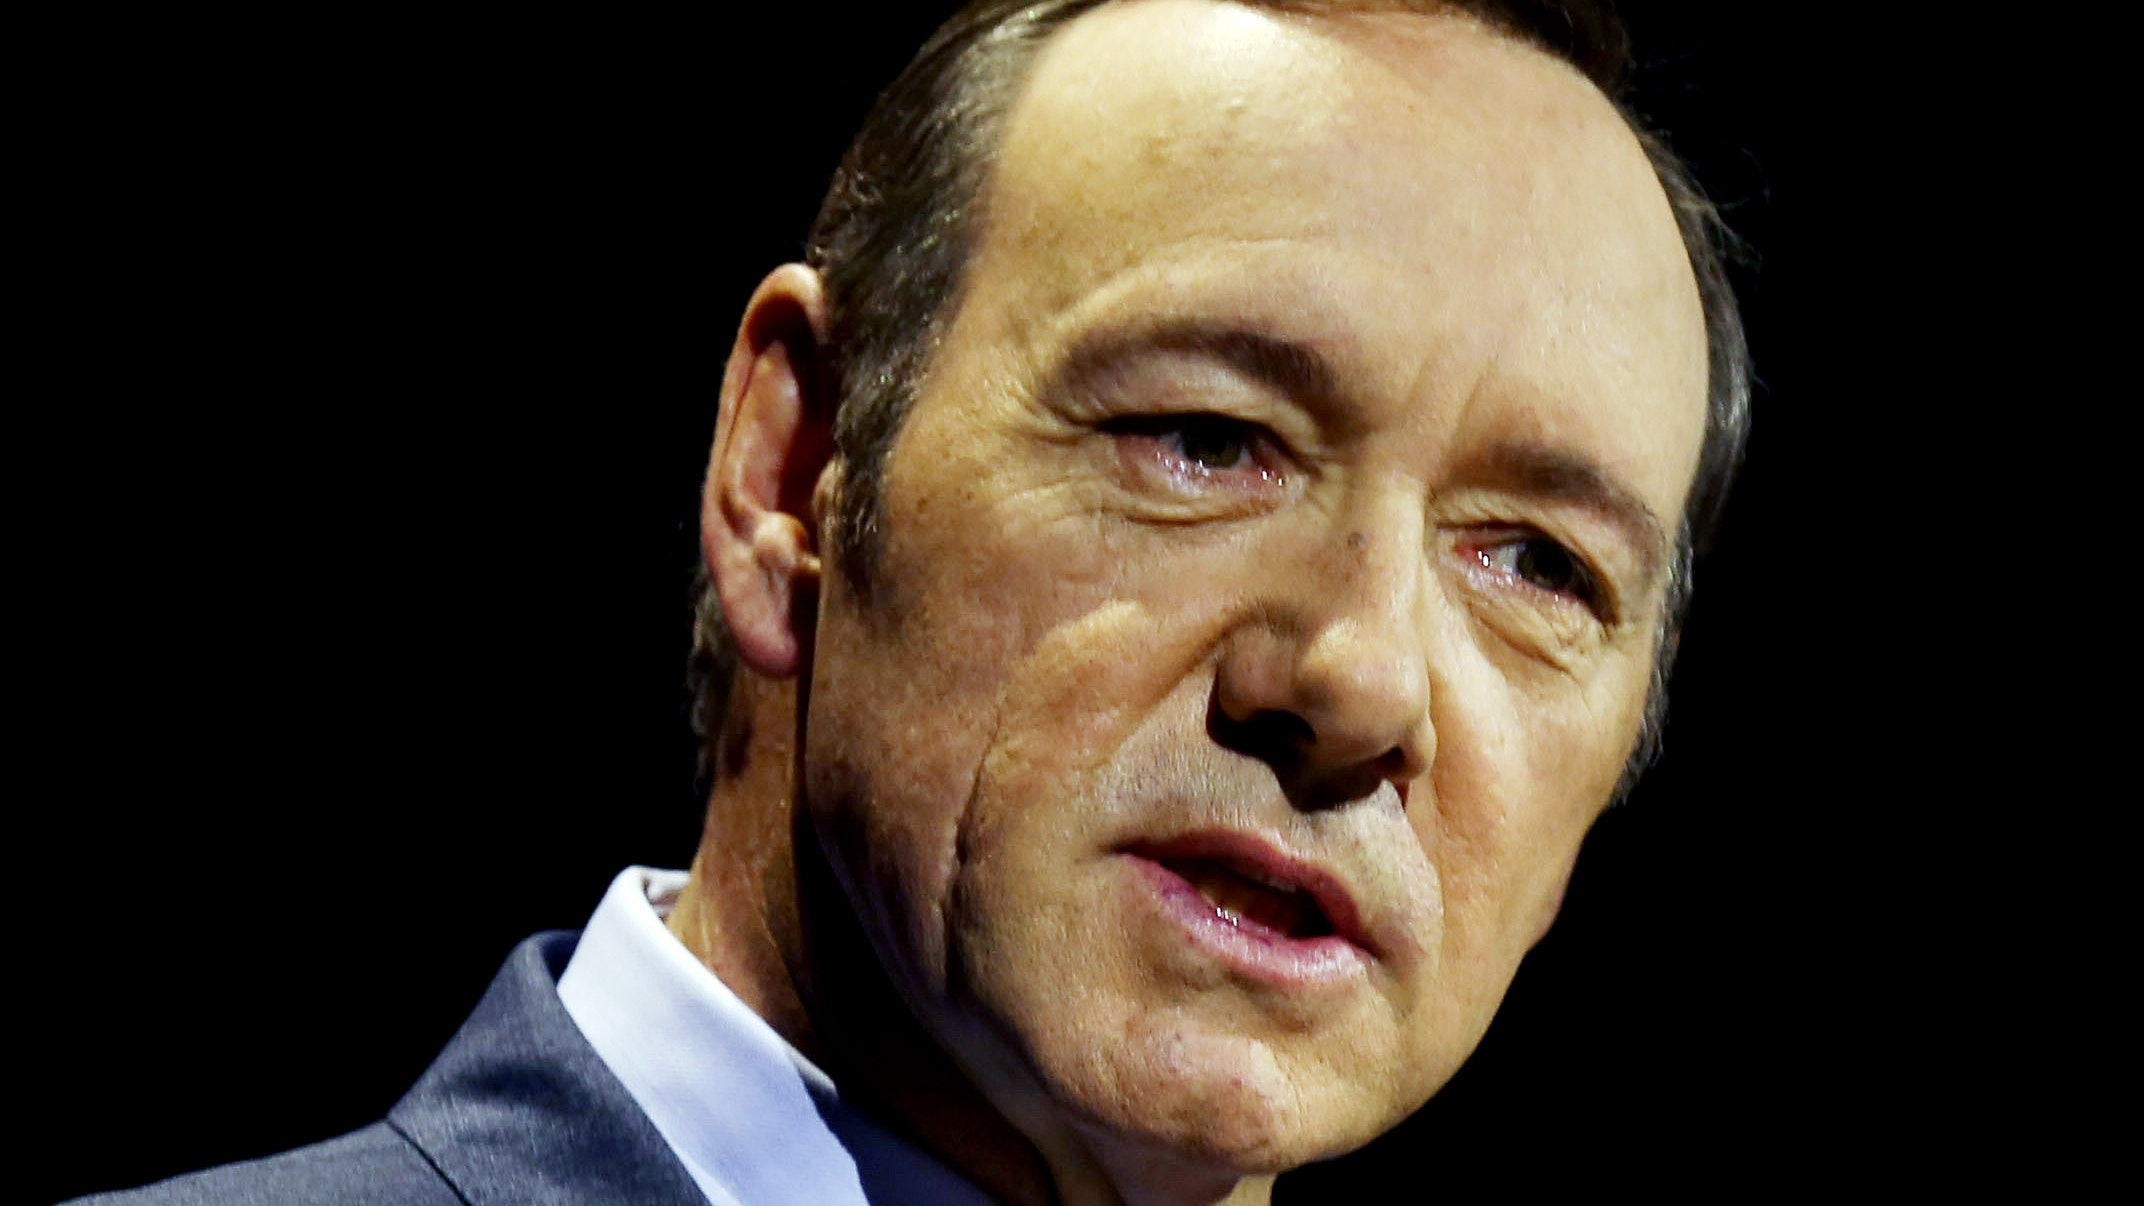 Kevin Spacey faces new assault probe in US